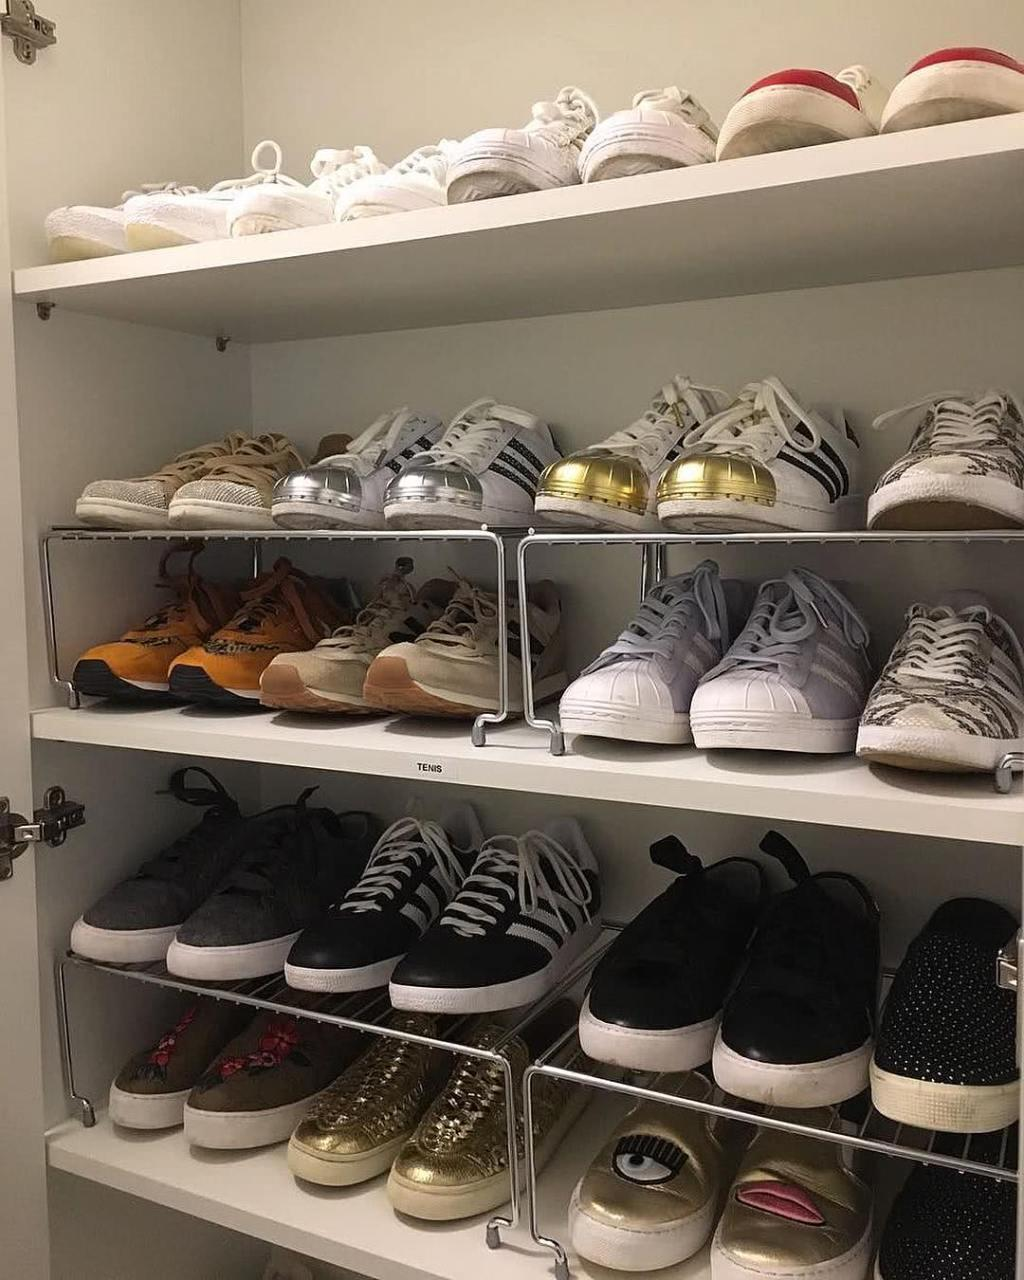 60 ideas and tips on how to organize shoes 31